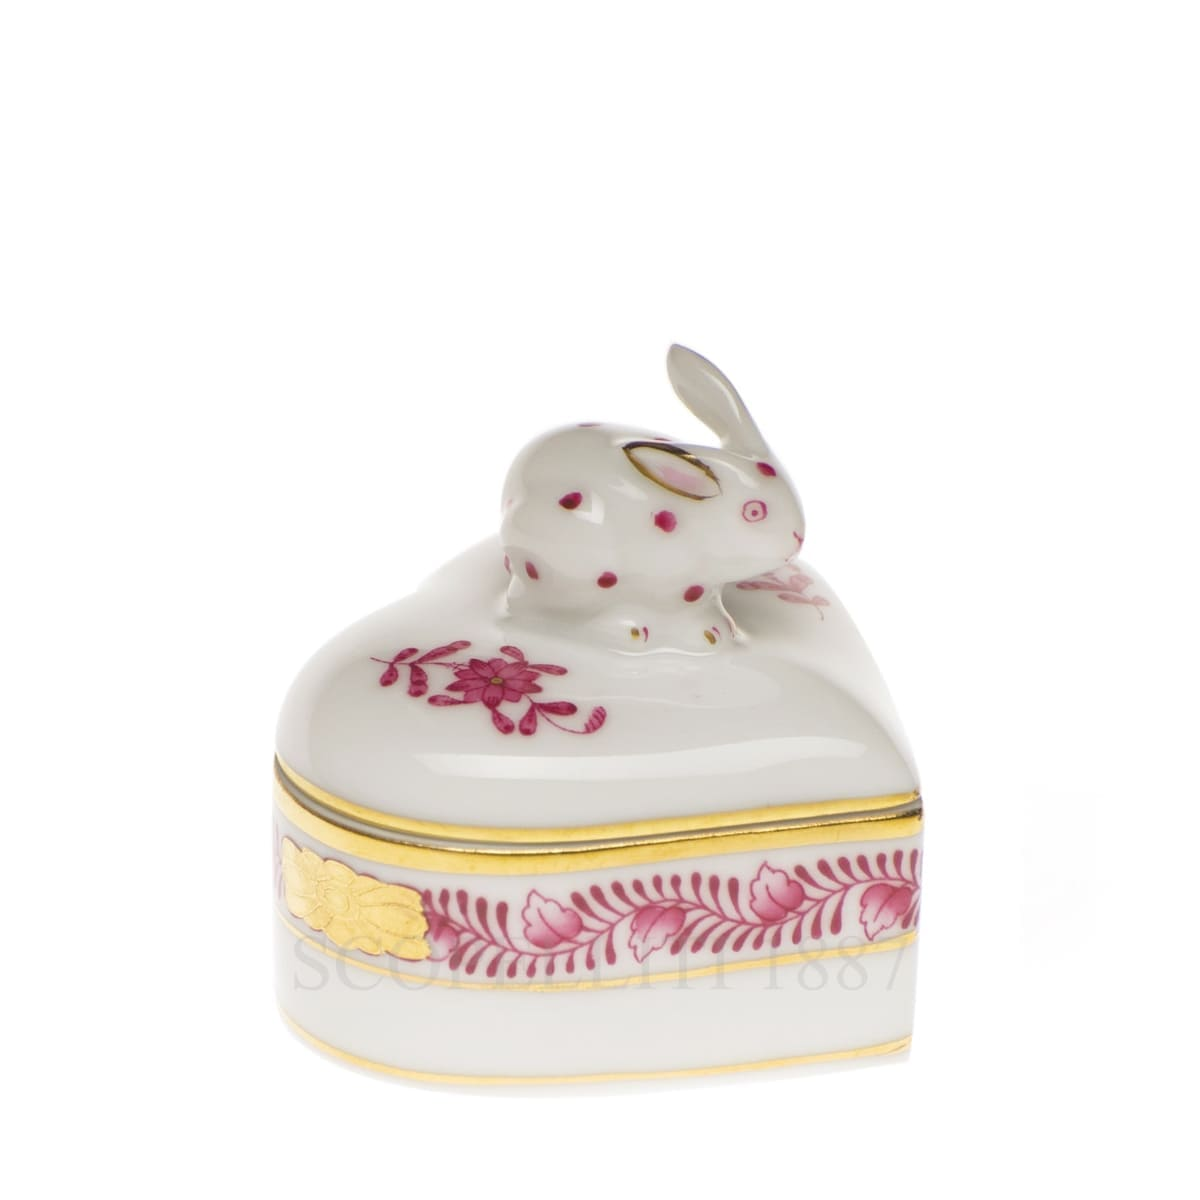 Herend Apponyi Heart Box with Bunny 6112-0-25 AP